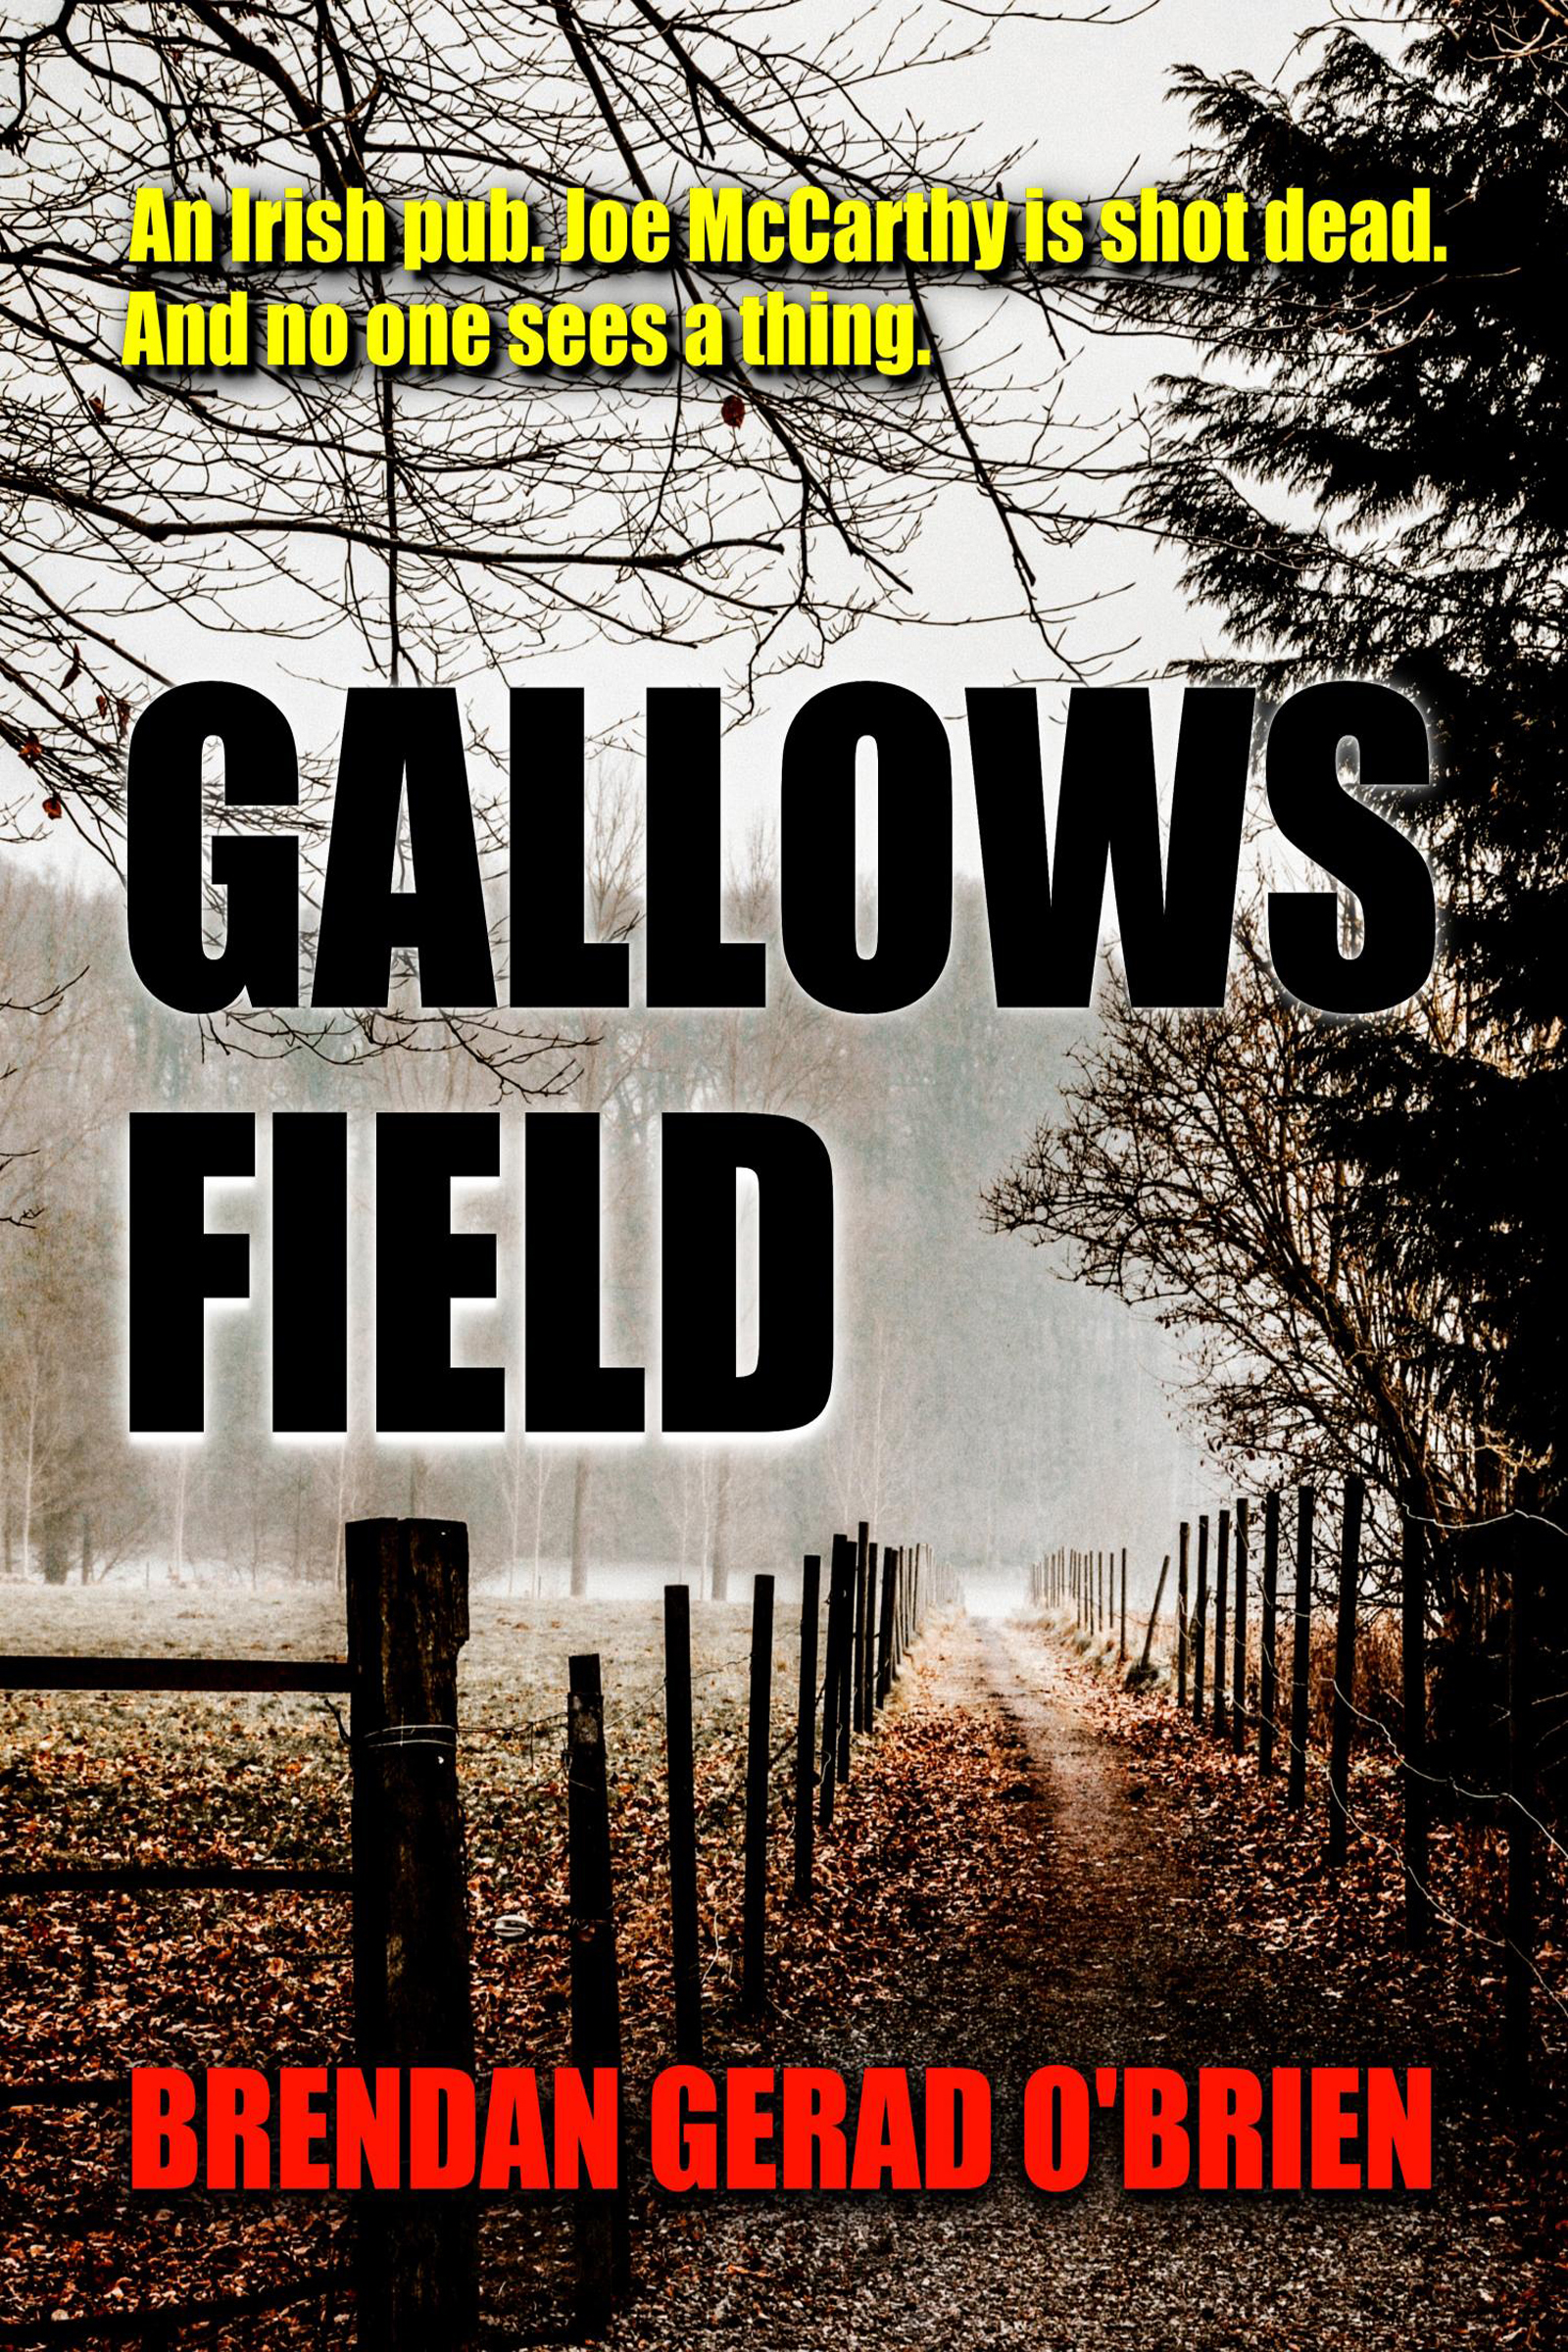 Gallows Field Draft2Digital version b-72dpi-1500x2000 (7)